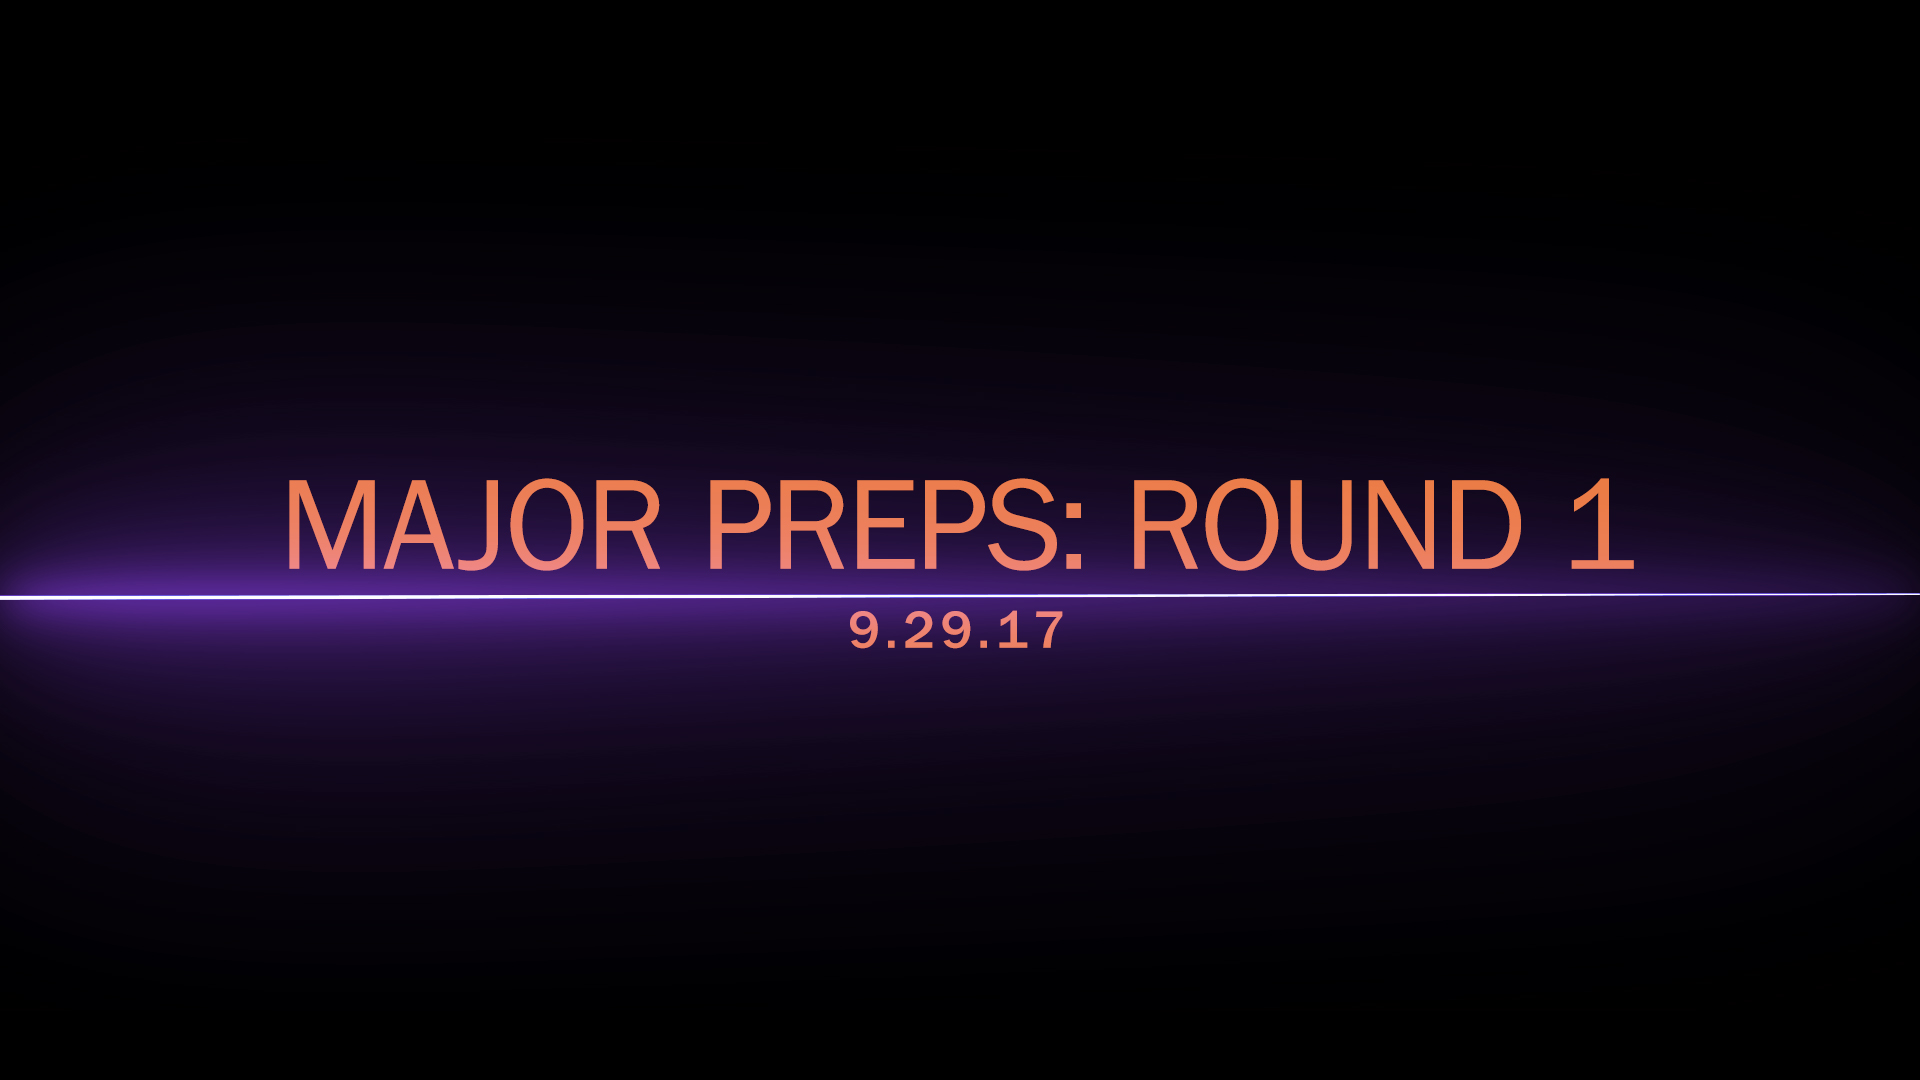 TCI: First major weekend of final Breeders' Cup preps – 09/29/2017